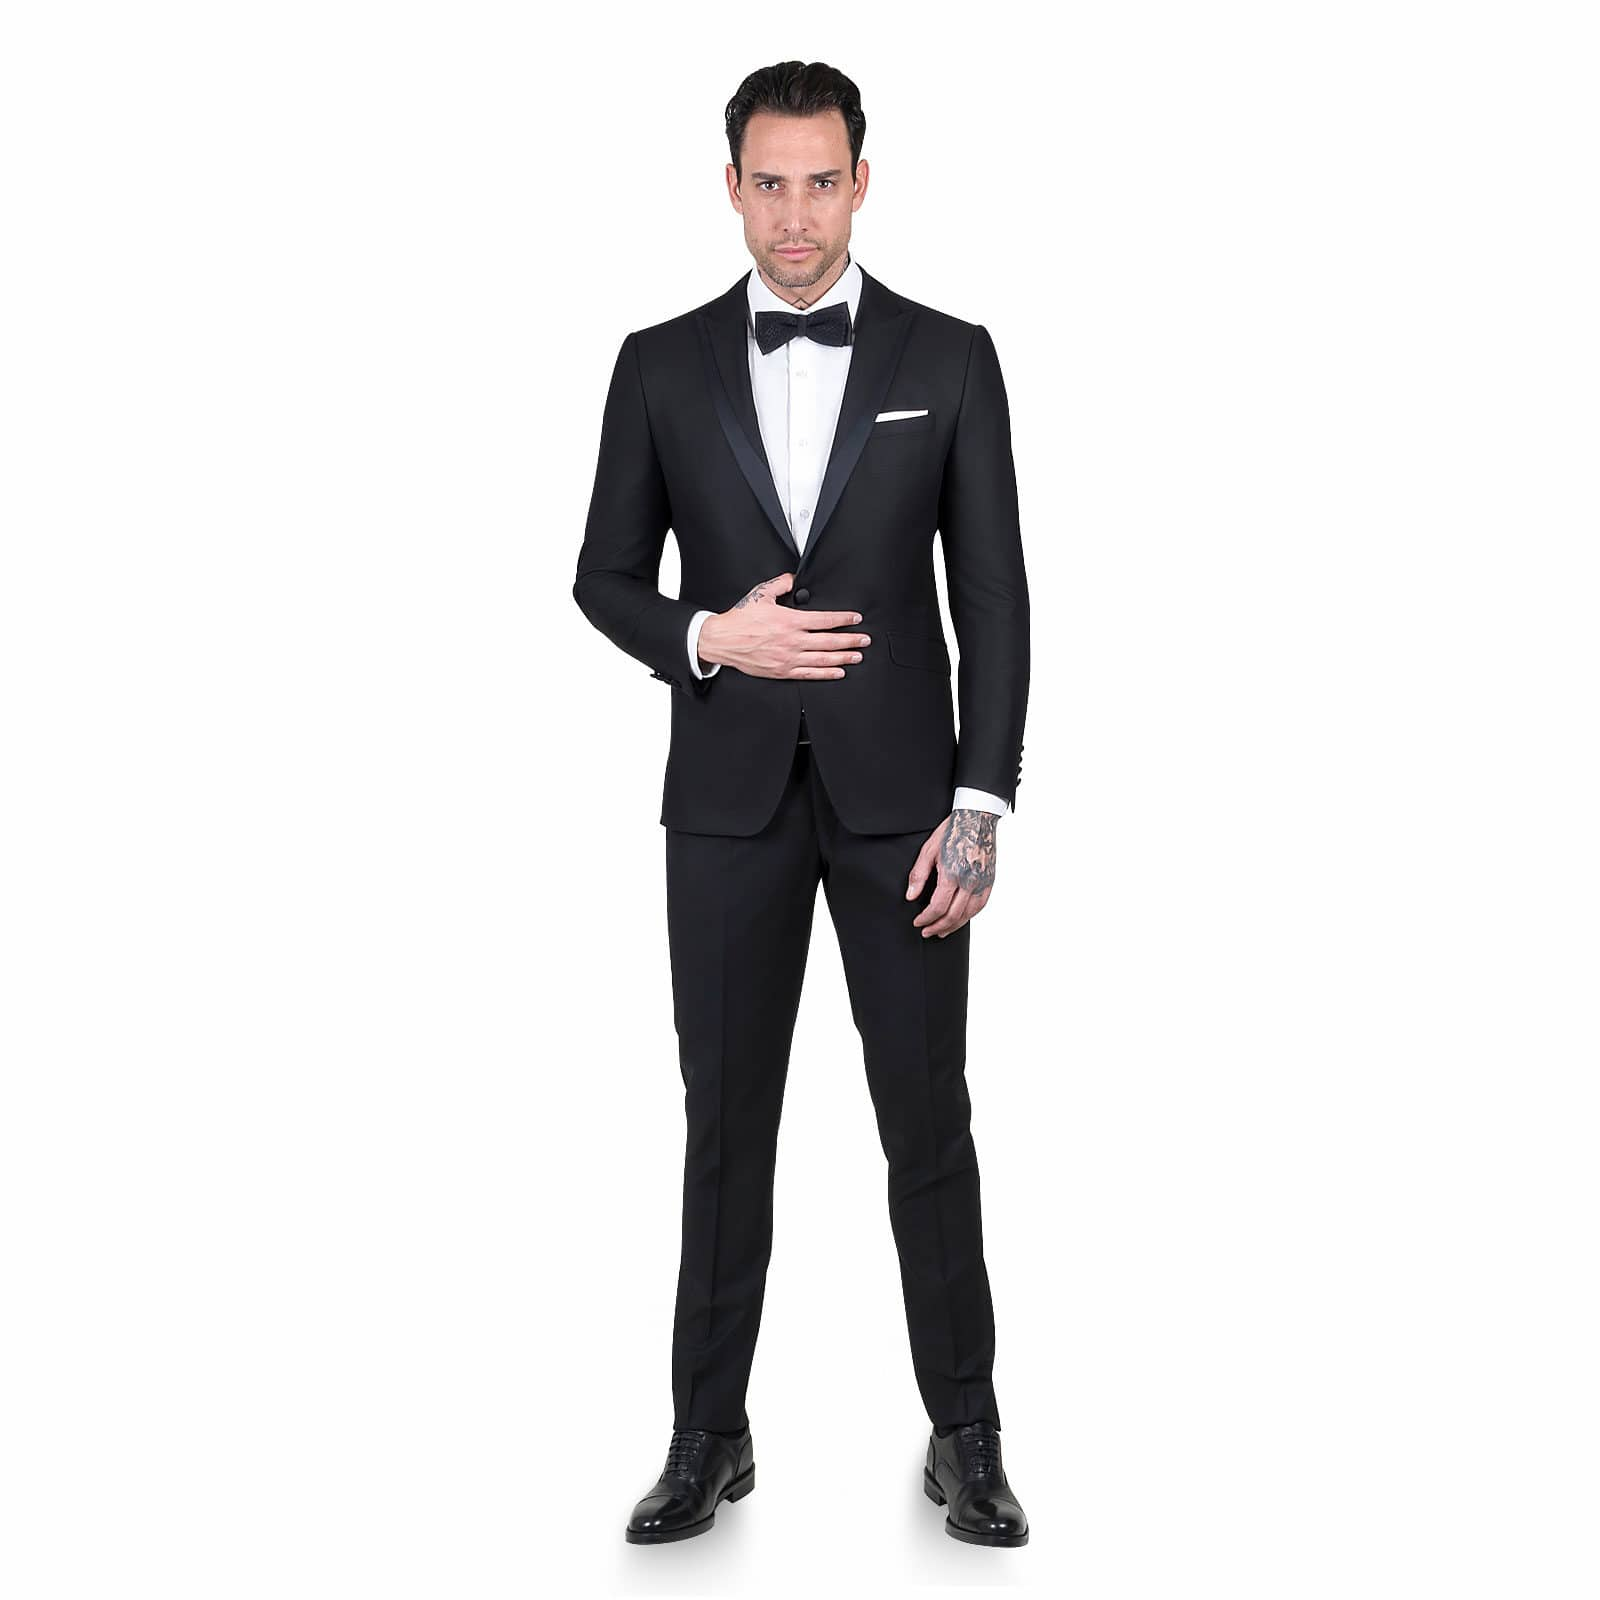 830a31c6cd6a Prince Oliver Κοστούμι Tuxedo – Collection A W - Prince Oliver